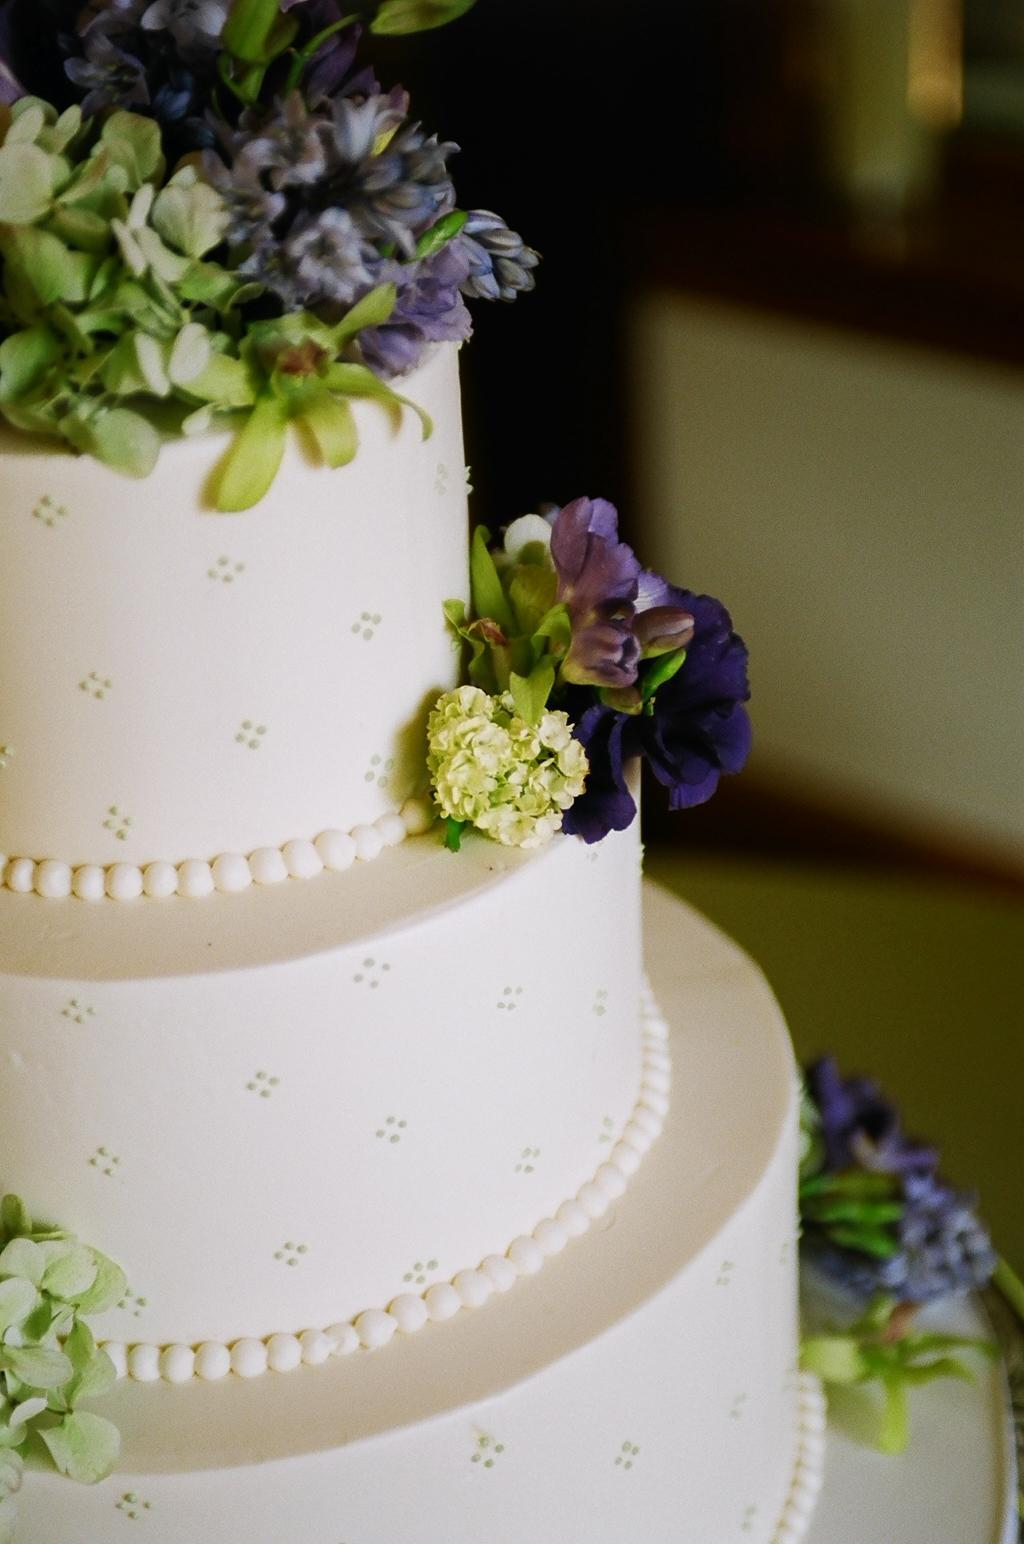 Best White Simple Wedding Cakes Pictures and Wallpapers   Wedding Cakes Best White Simple Wedding Cakes Pictures and Wallpapers